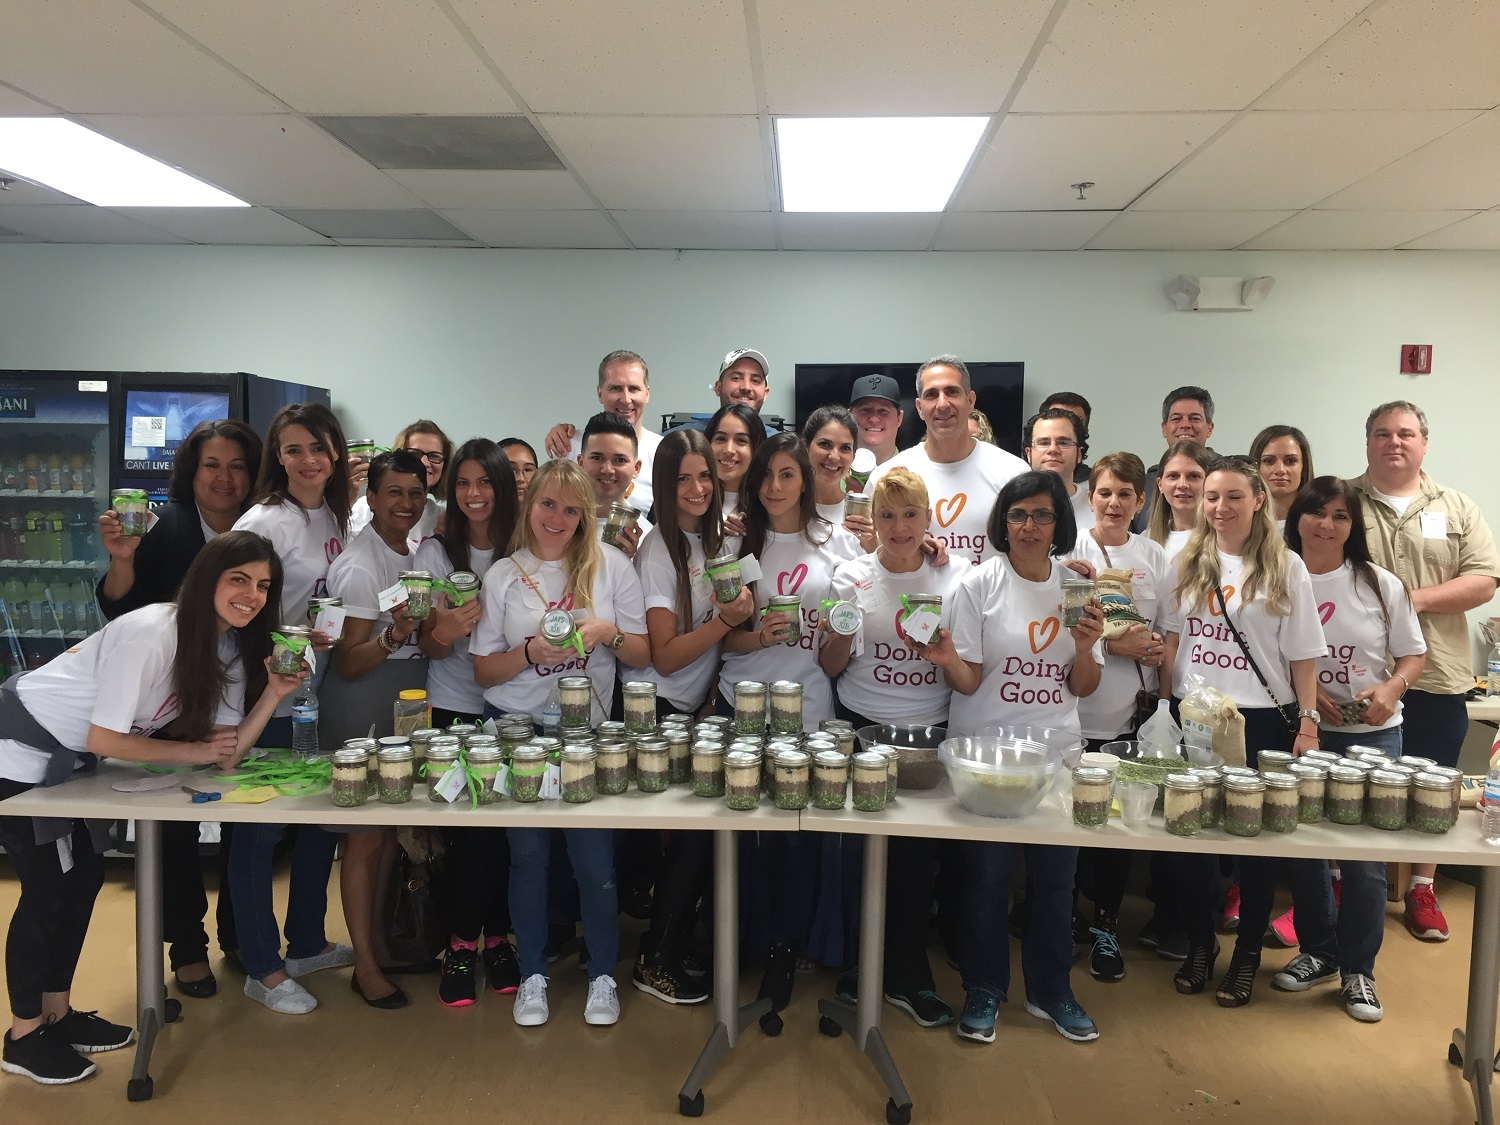 Northern Trust collects food and makes goodie jars for Good Deeds Day!